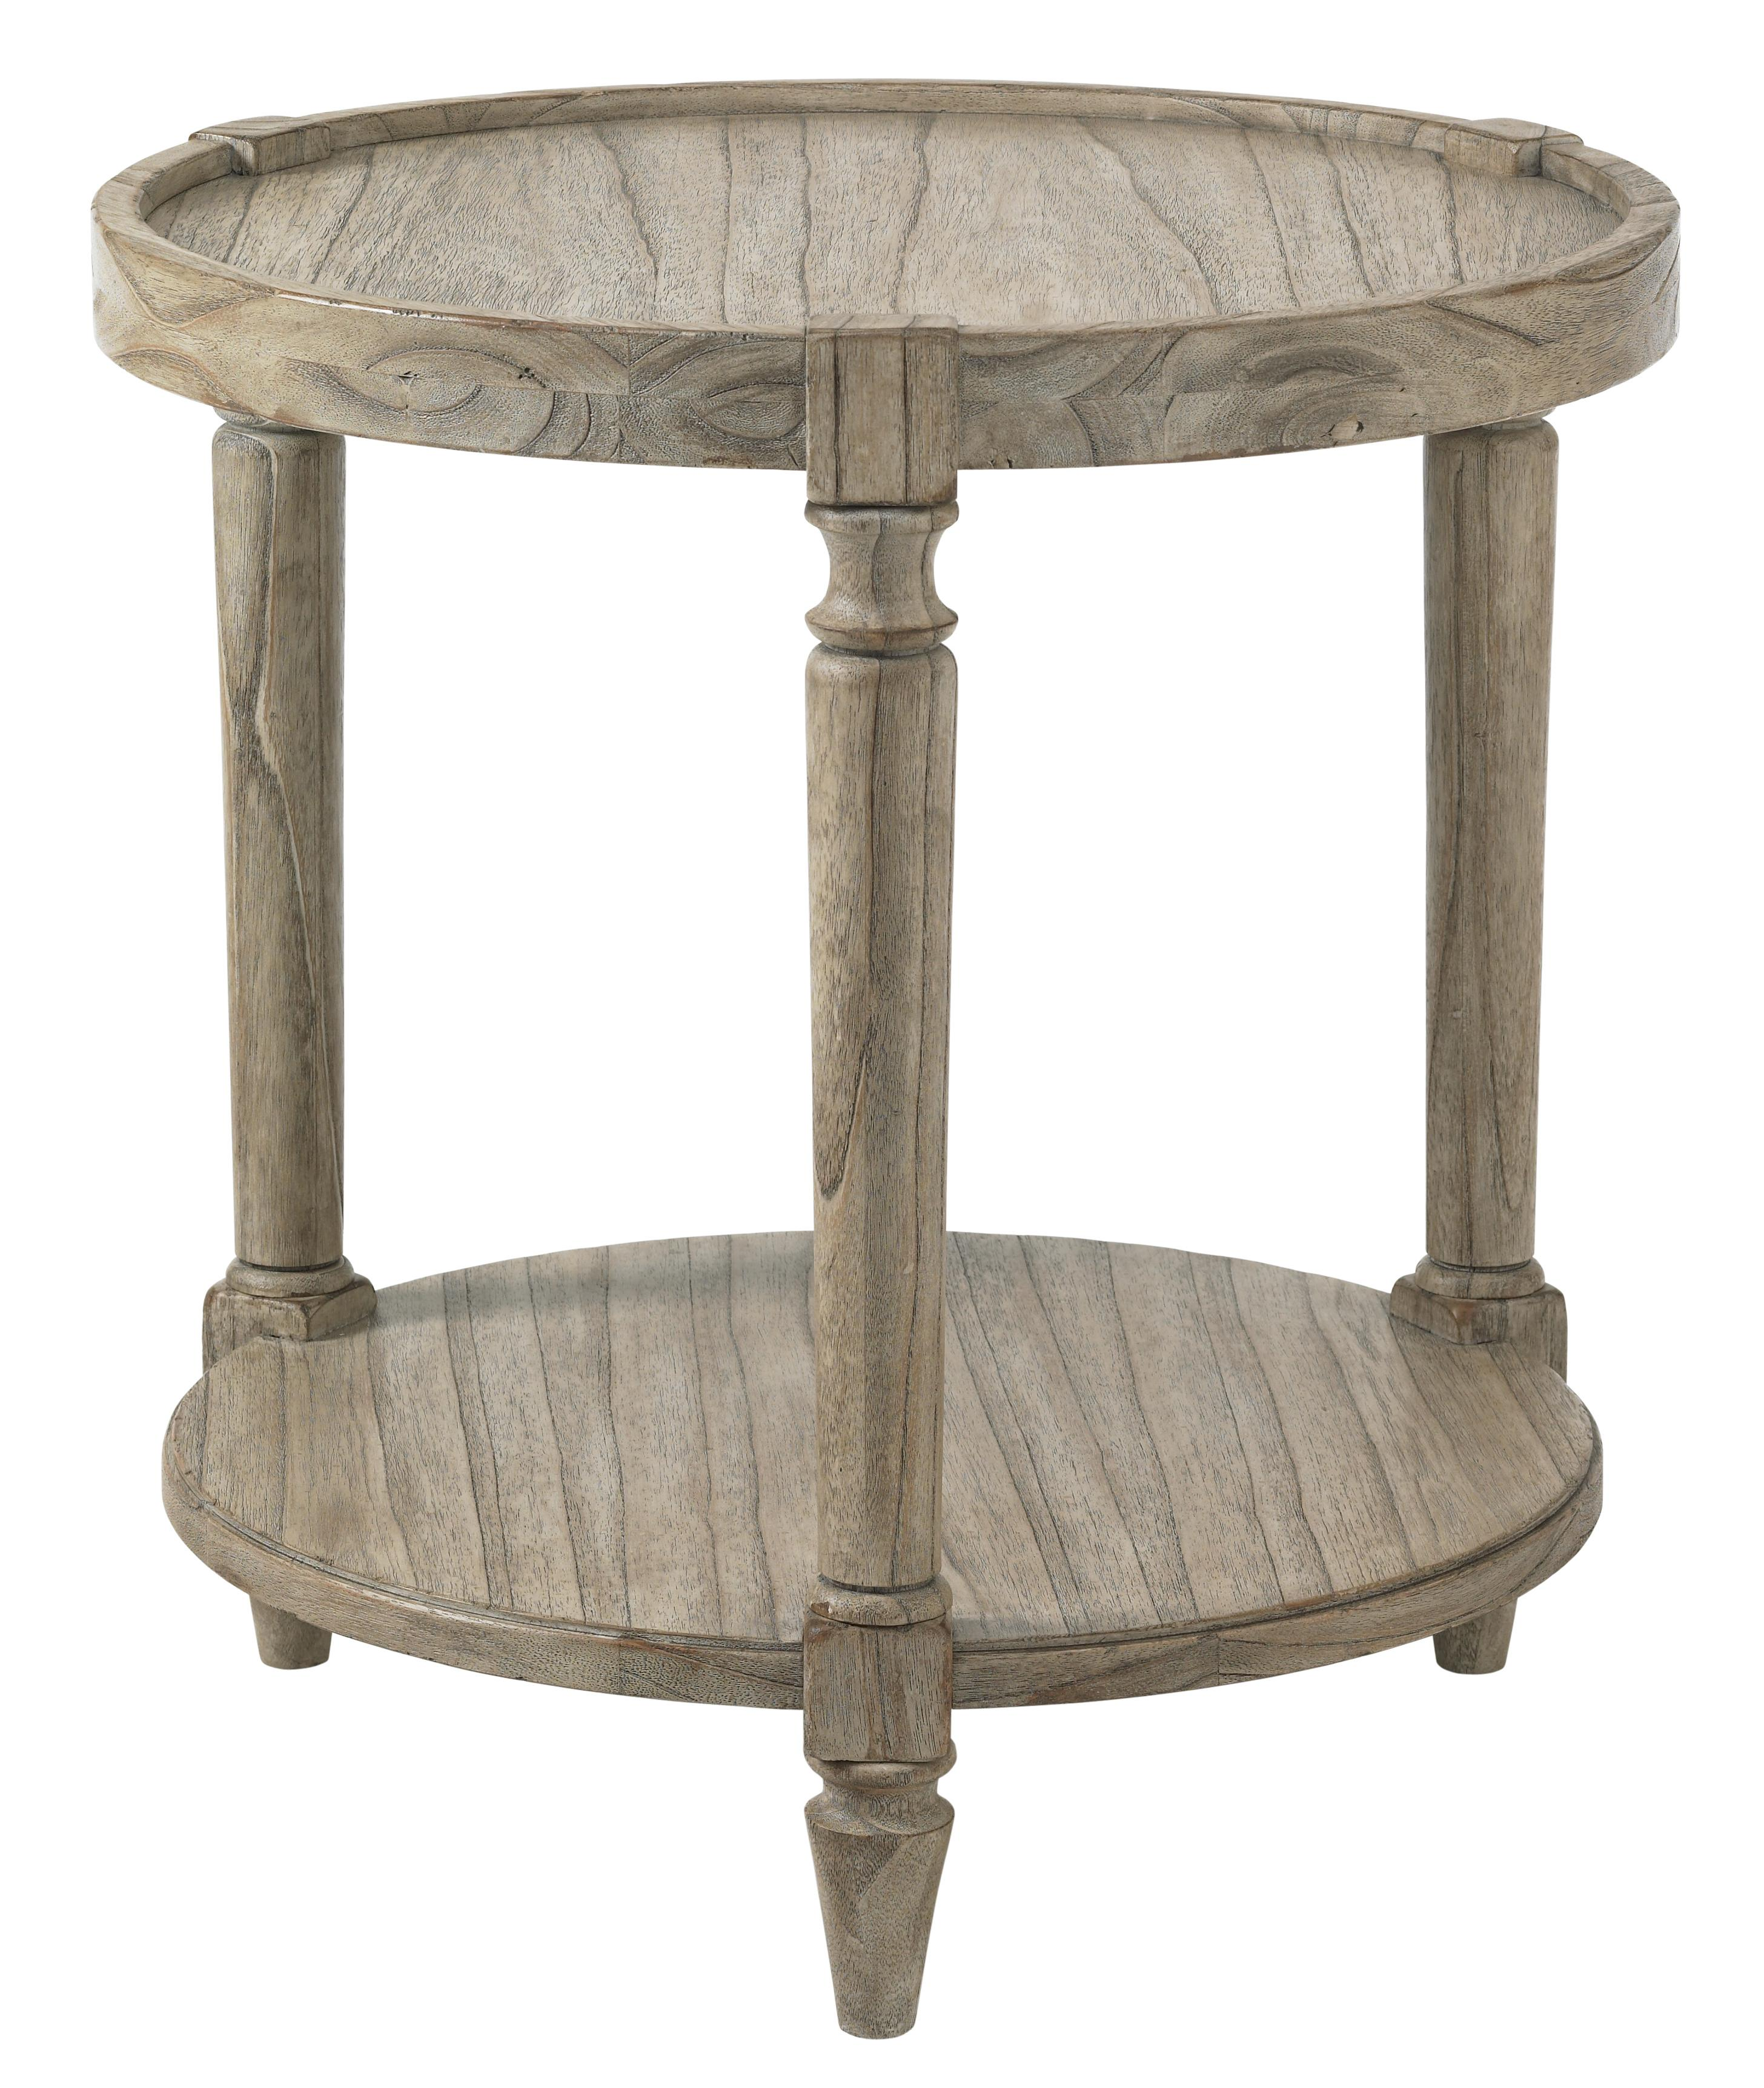 Twilight Bay Phoebe Lamp Table by Lexington at Baer's Furniture